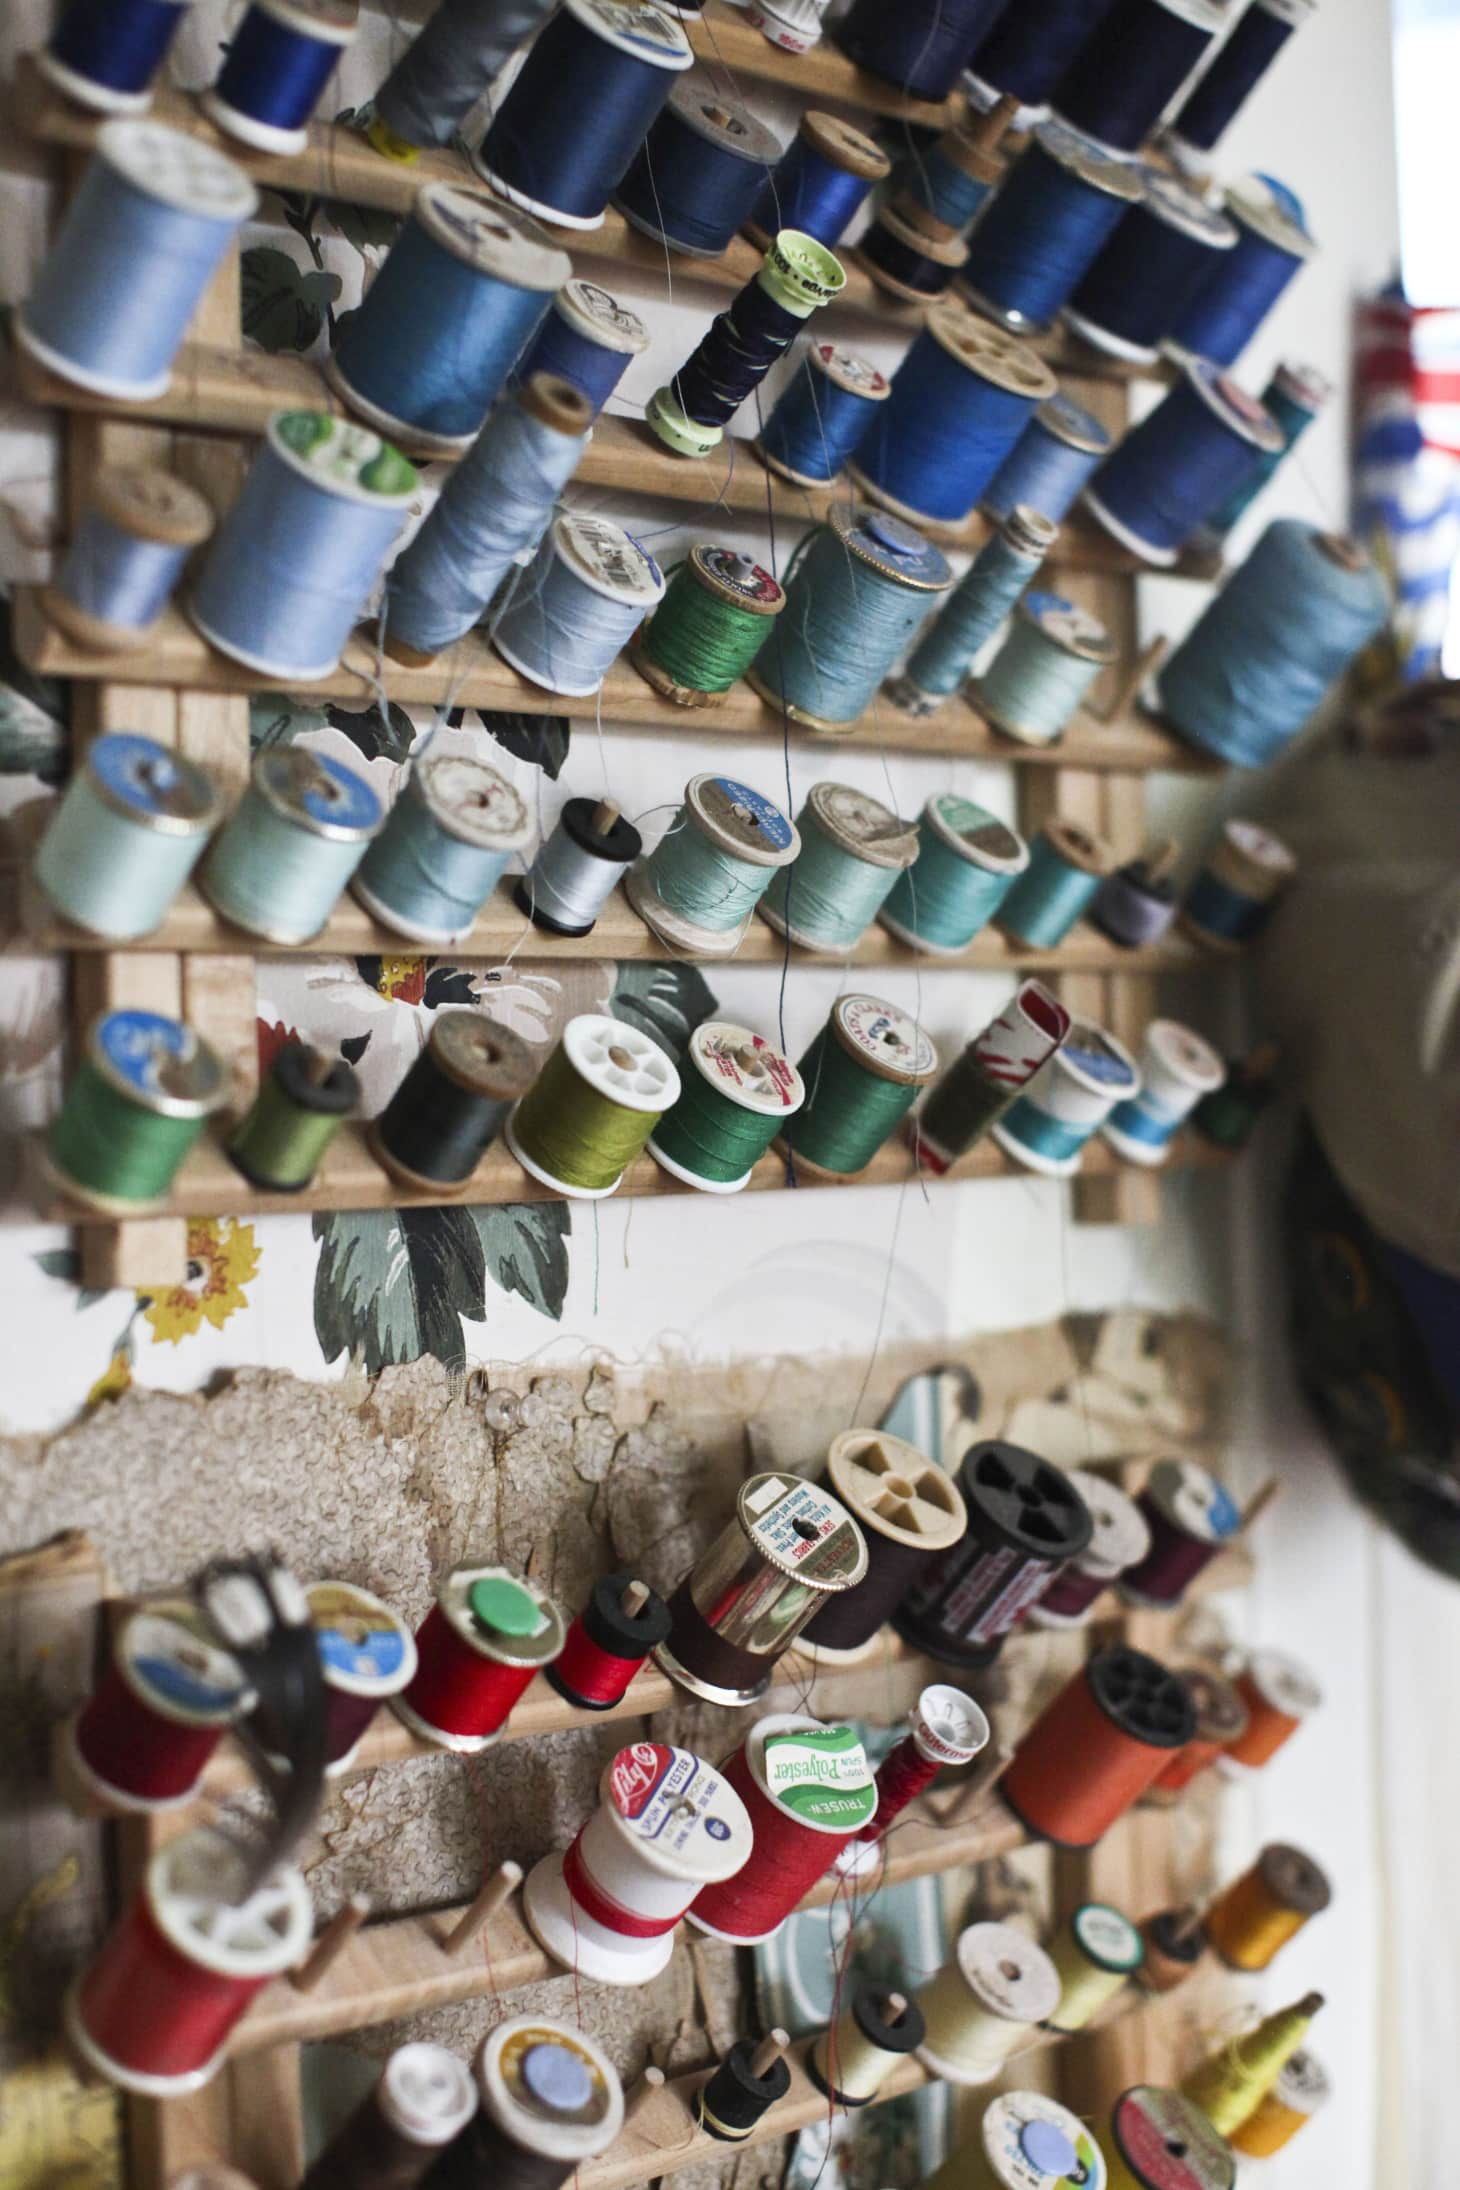 The Cheapest Best Online Sources For Diy Project Craft Supplies